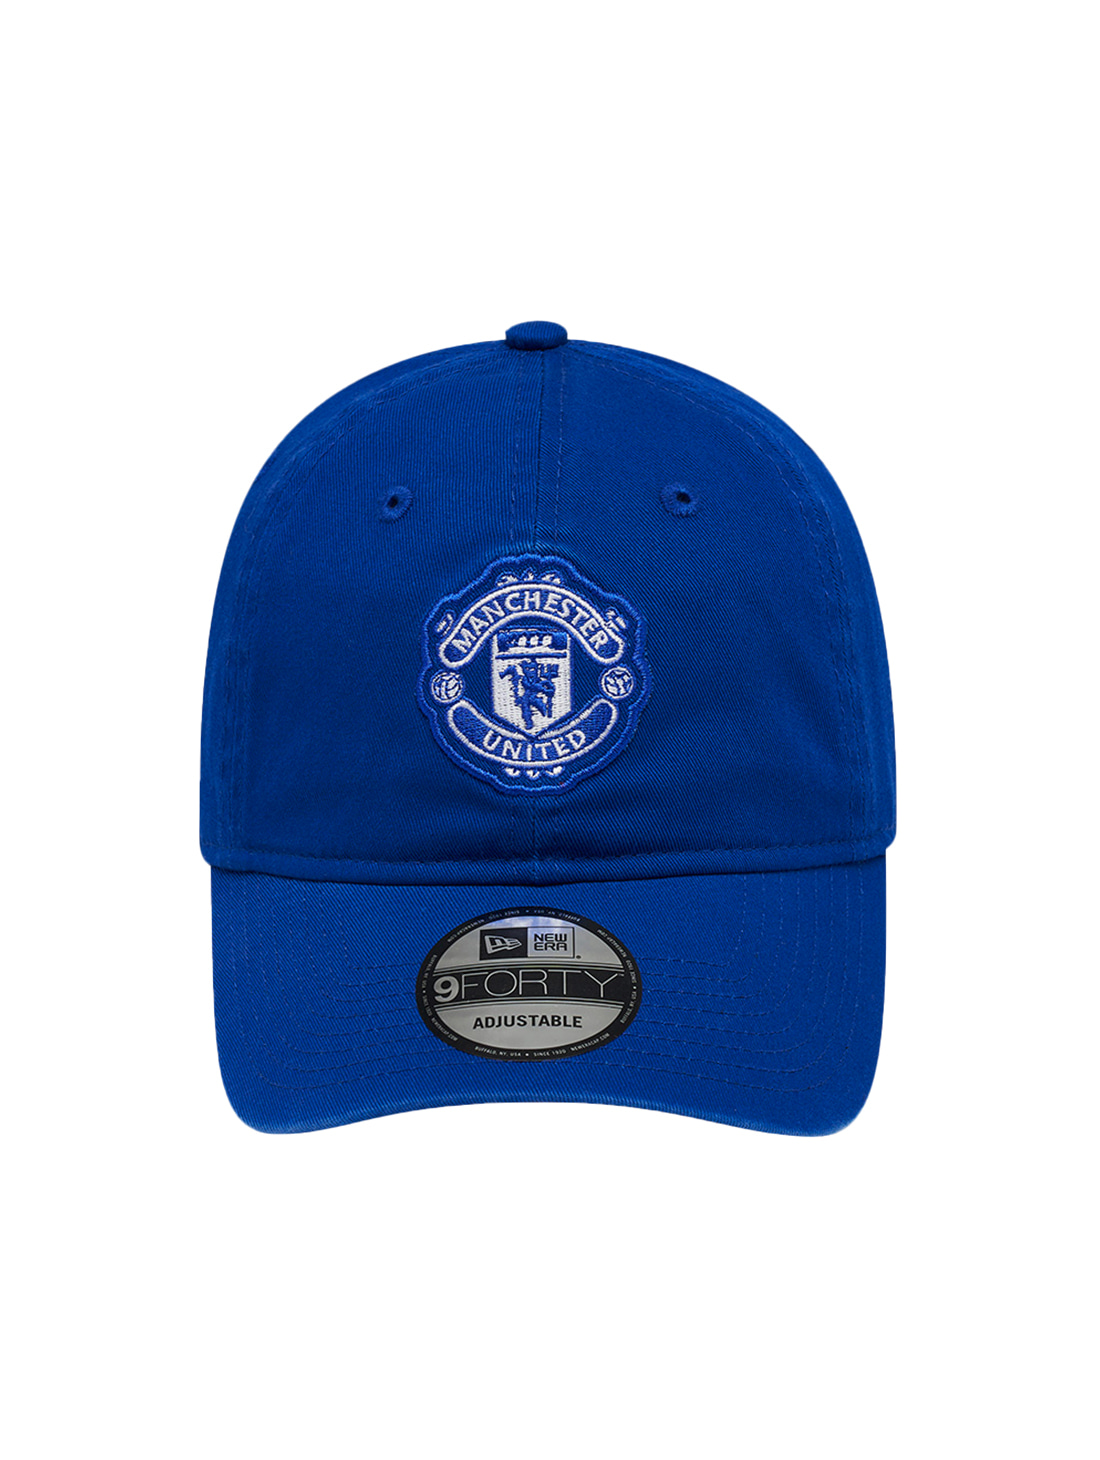 GOALSTUDIO MAN U 940UNST BALL CAP - BLUE